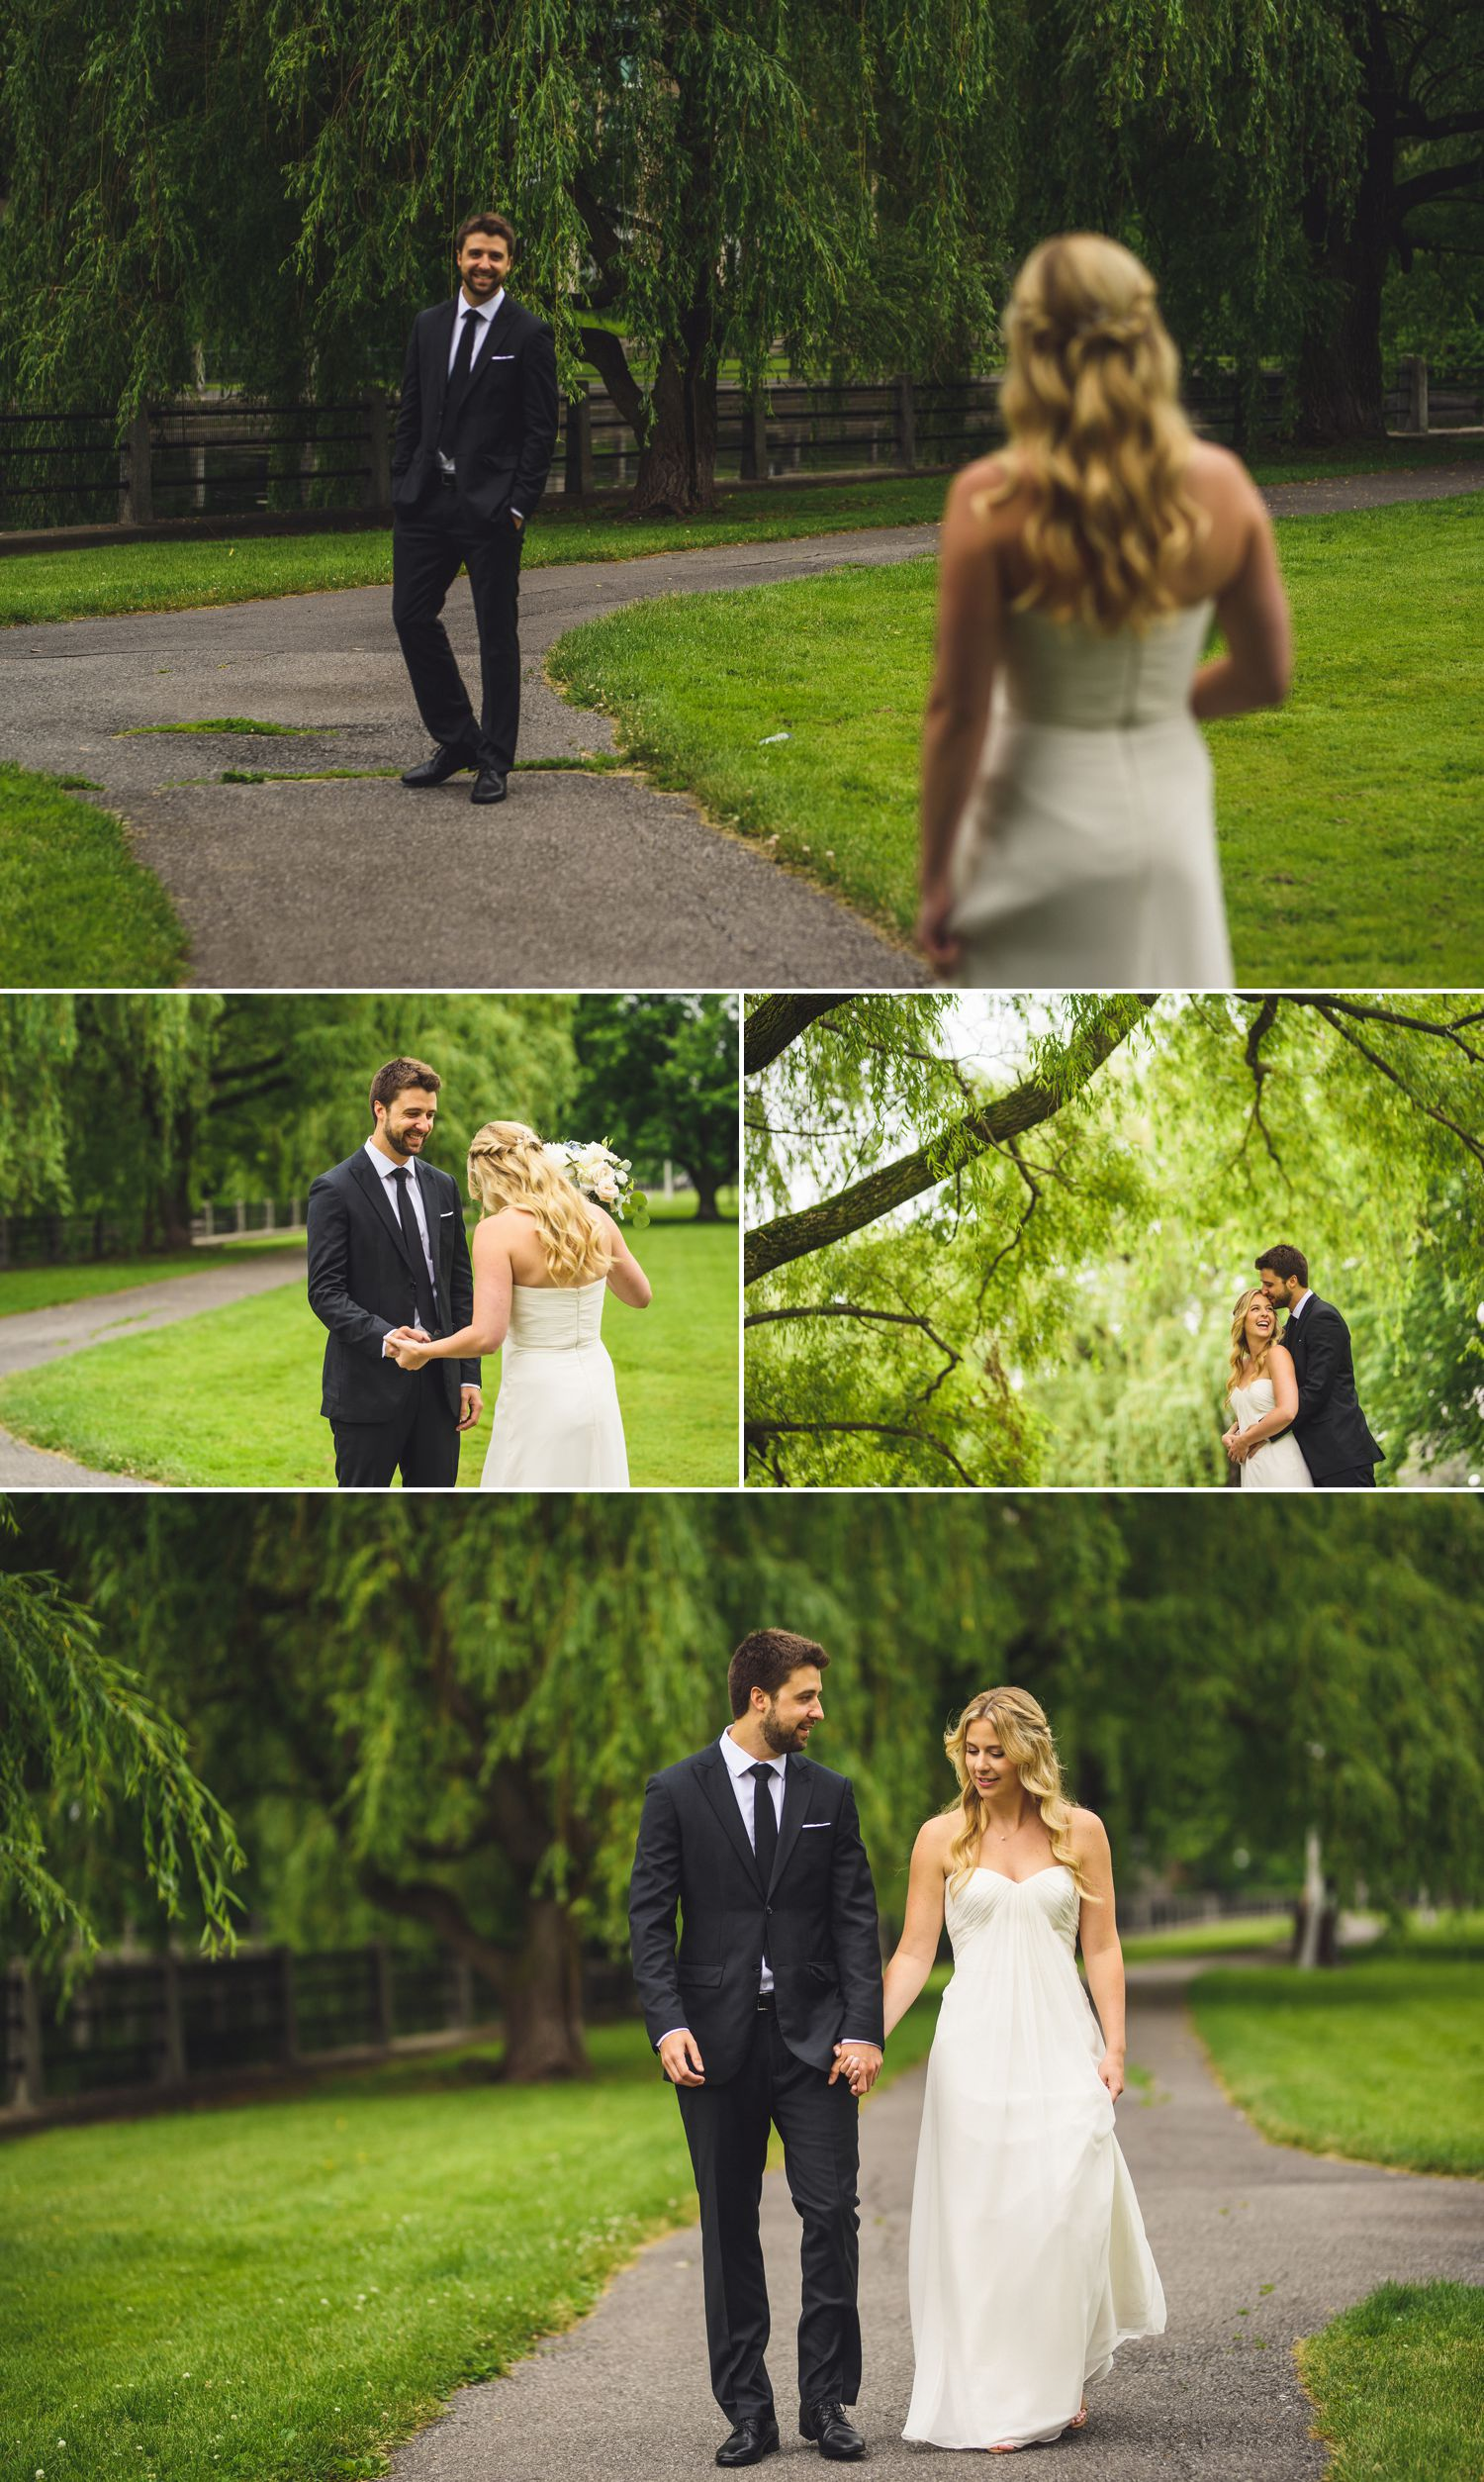 The bride and groom during their 'First Look' at Linden Terrace by the Rideau Canal in Ottawa, ON